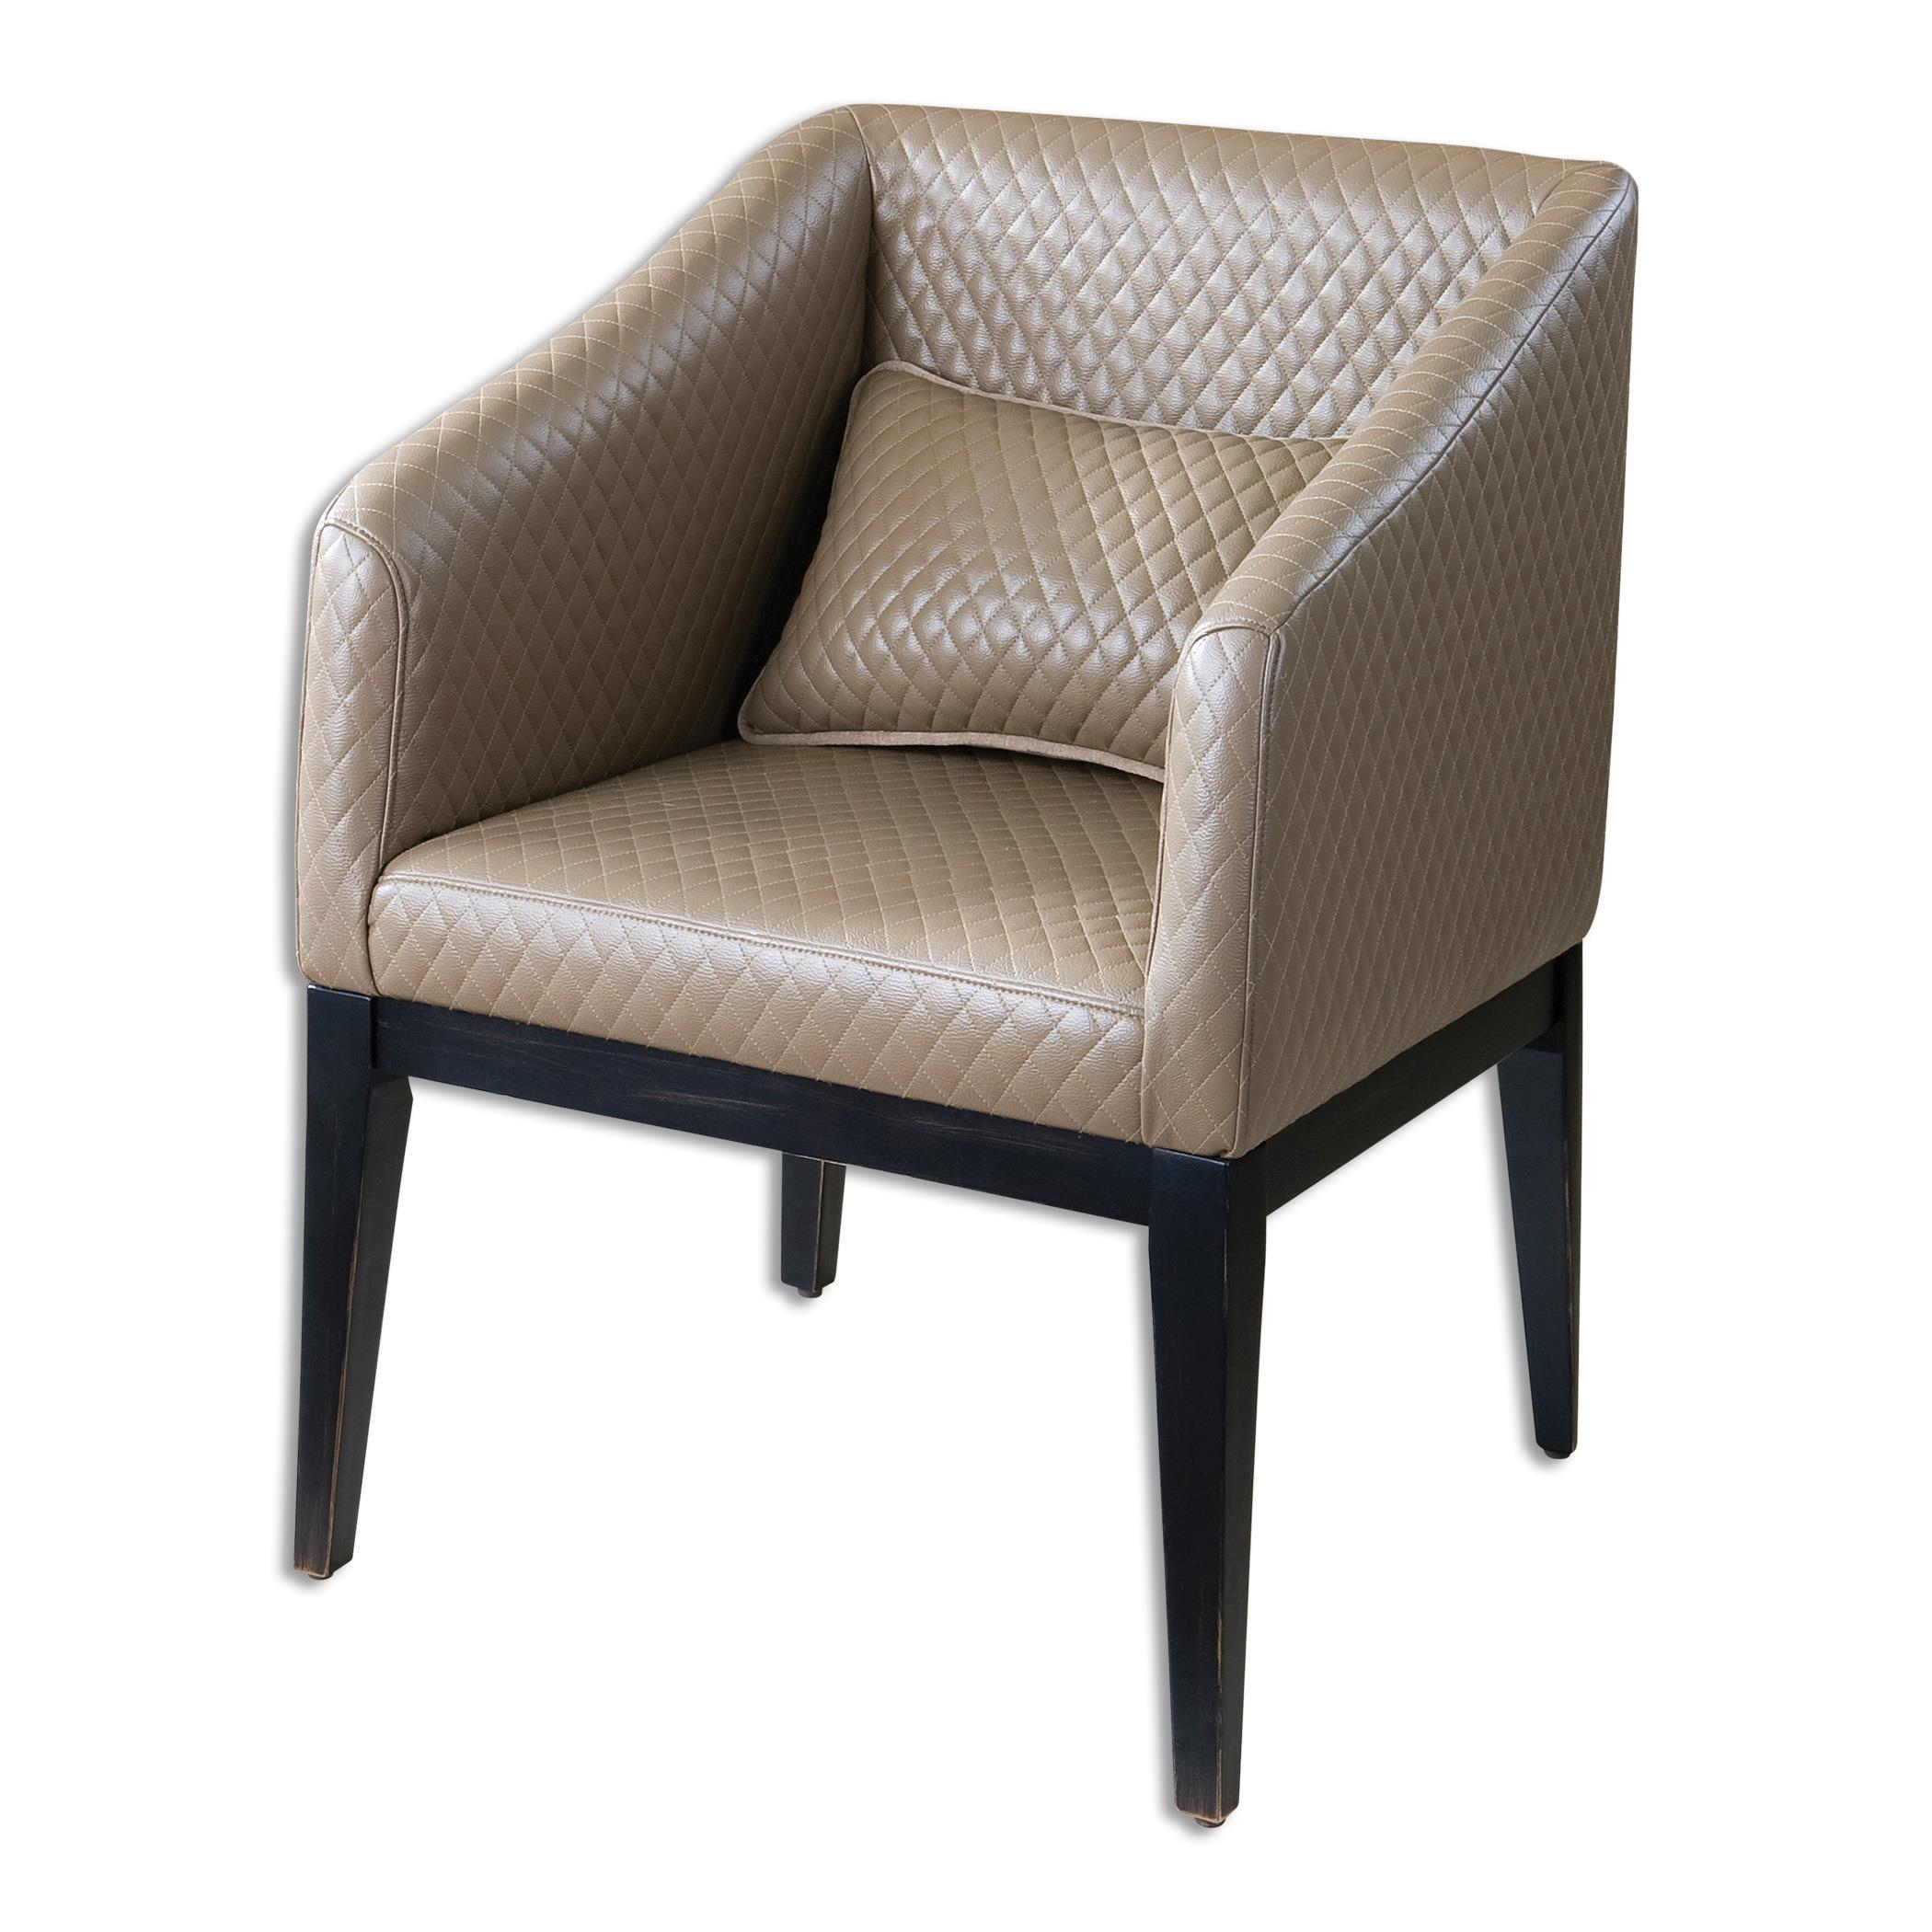 Uttermost Accent Furniture Jaelynn Classic Accent Chair - Item Number: 23224